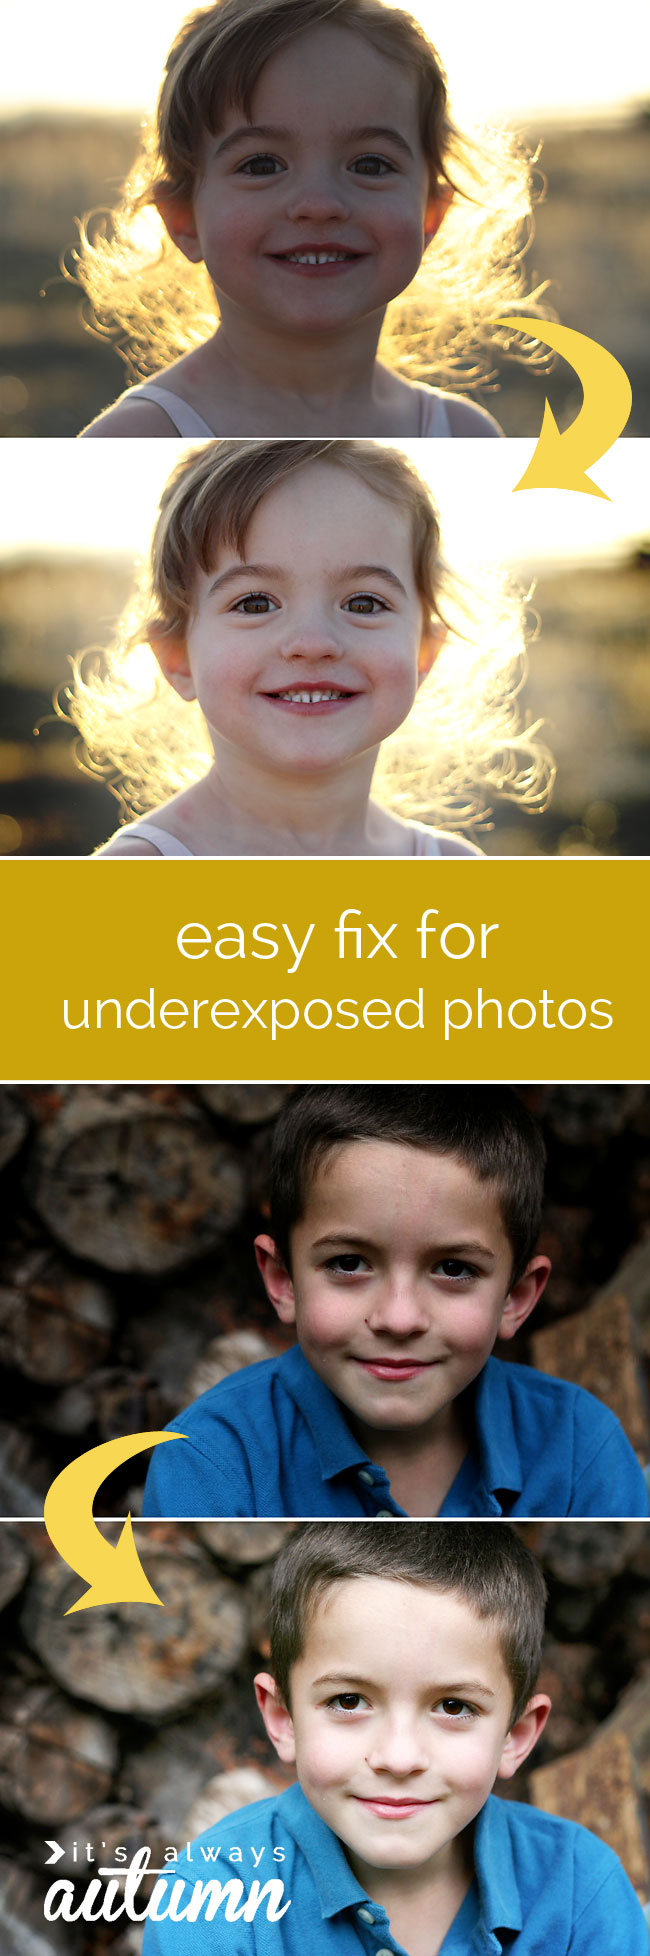 how to fix dark or underexposed photos - easy!